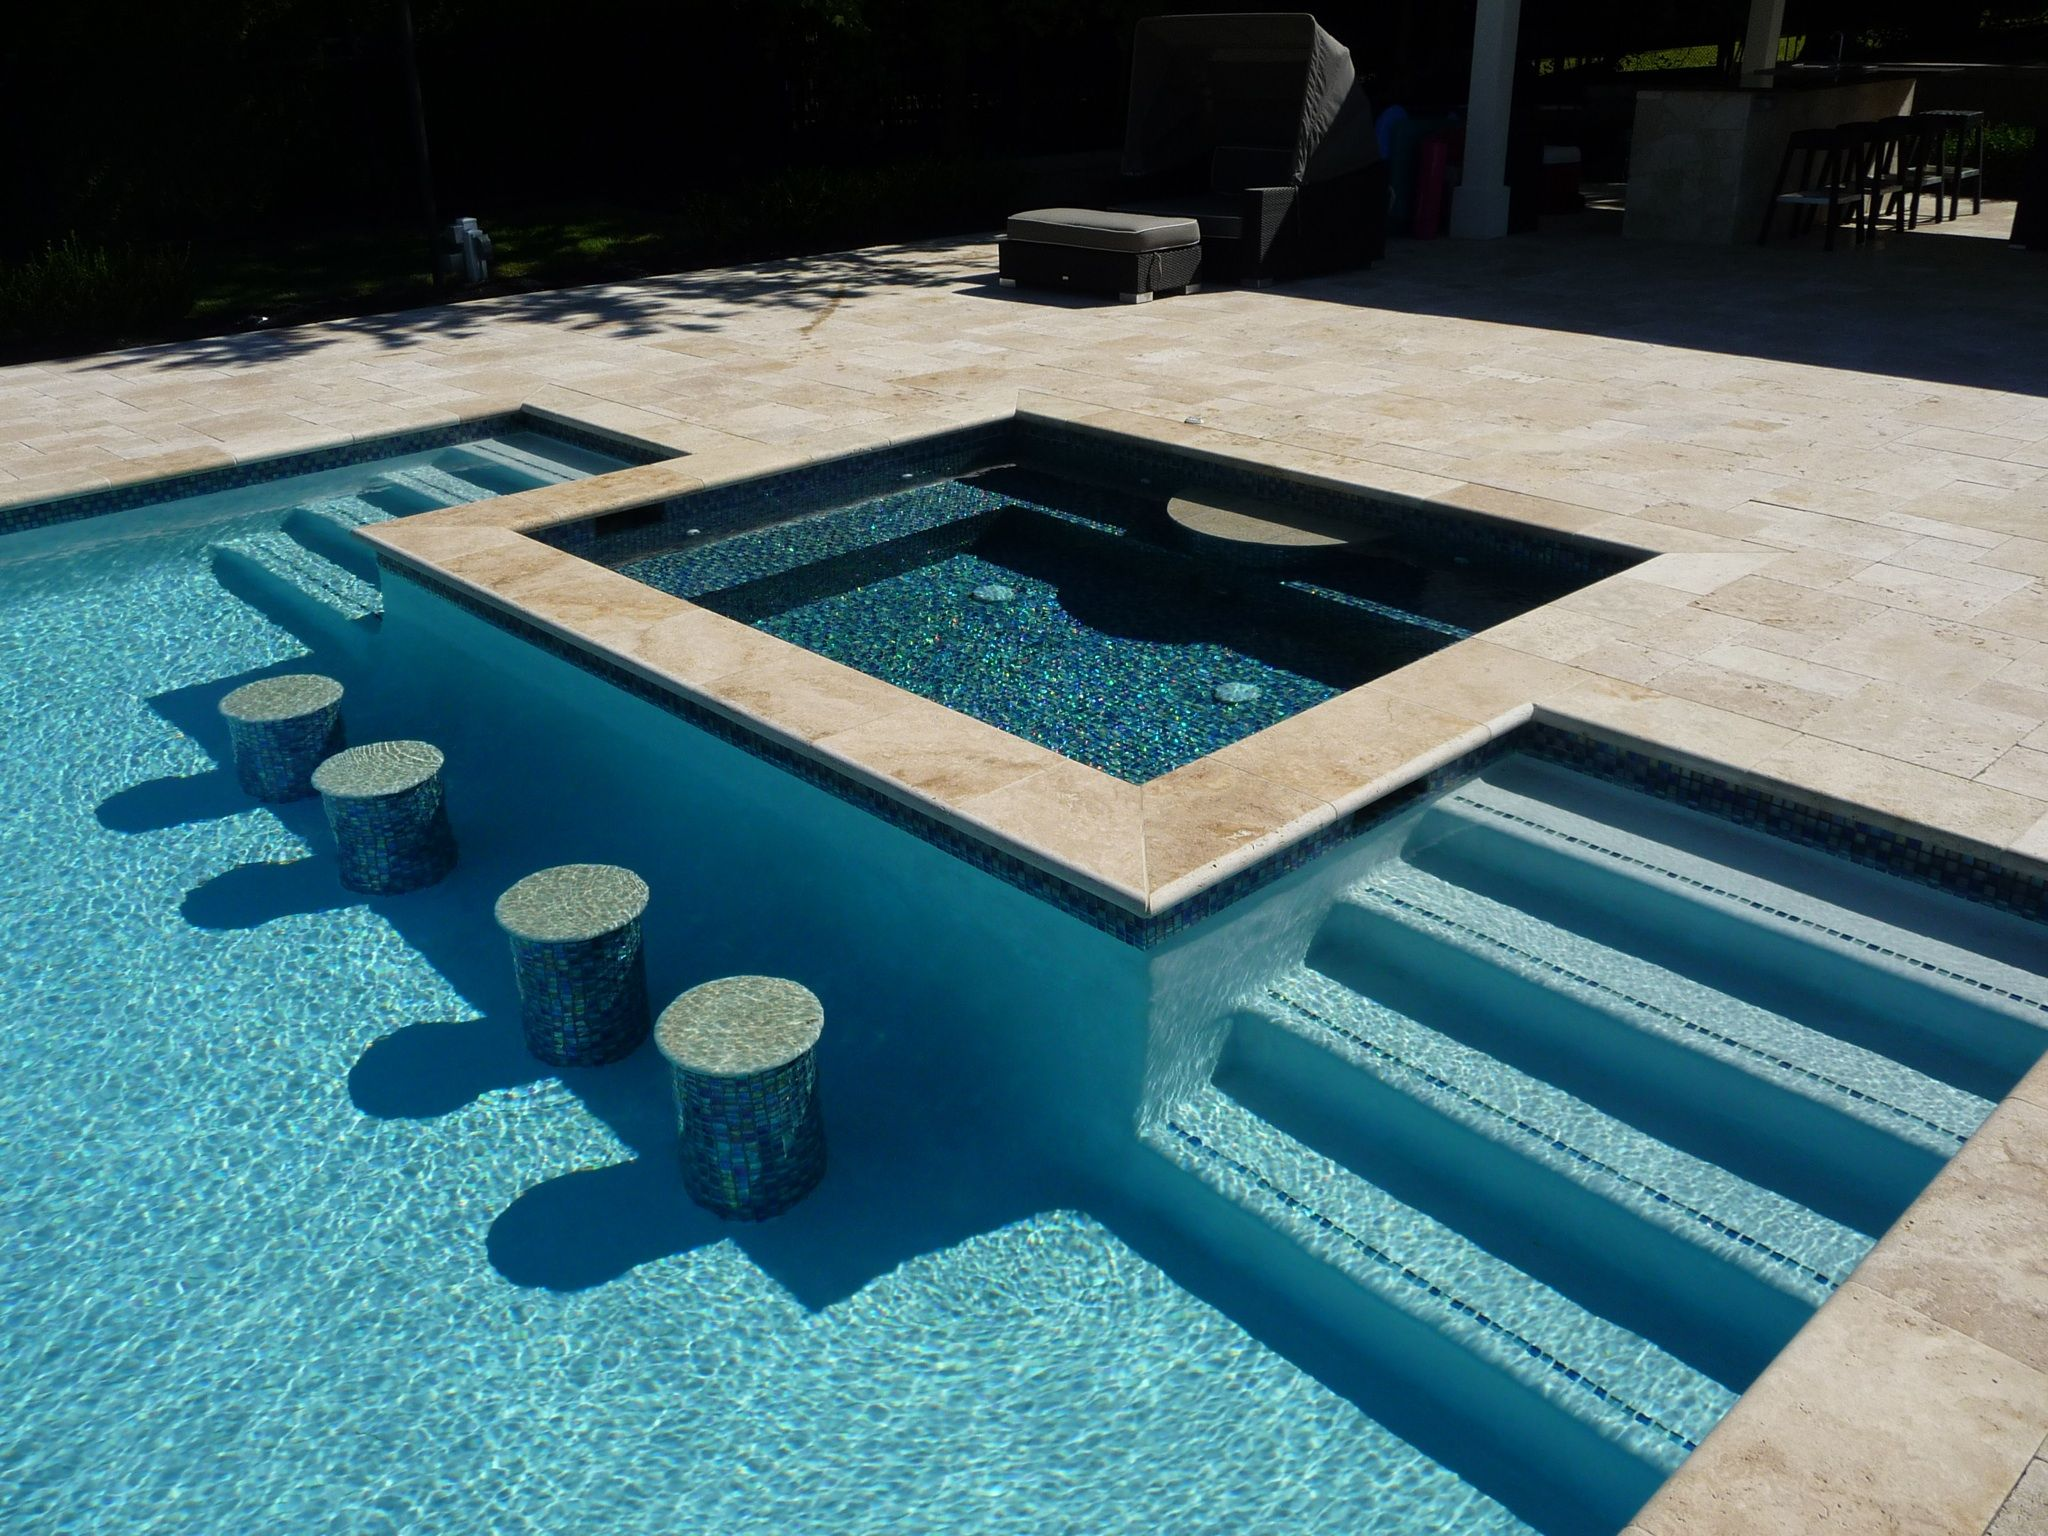 Pin By Daiana Duarte De Oliveira On Swimming Pools Diy Swimming Pool Cool Swimming Pools Rectangular Pool